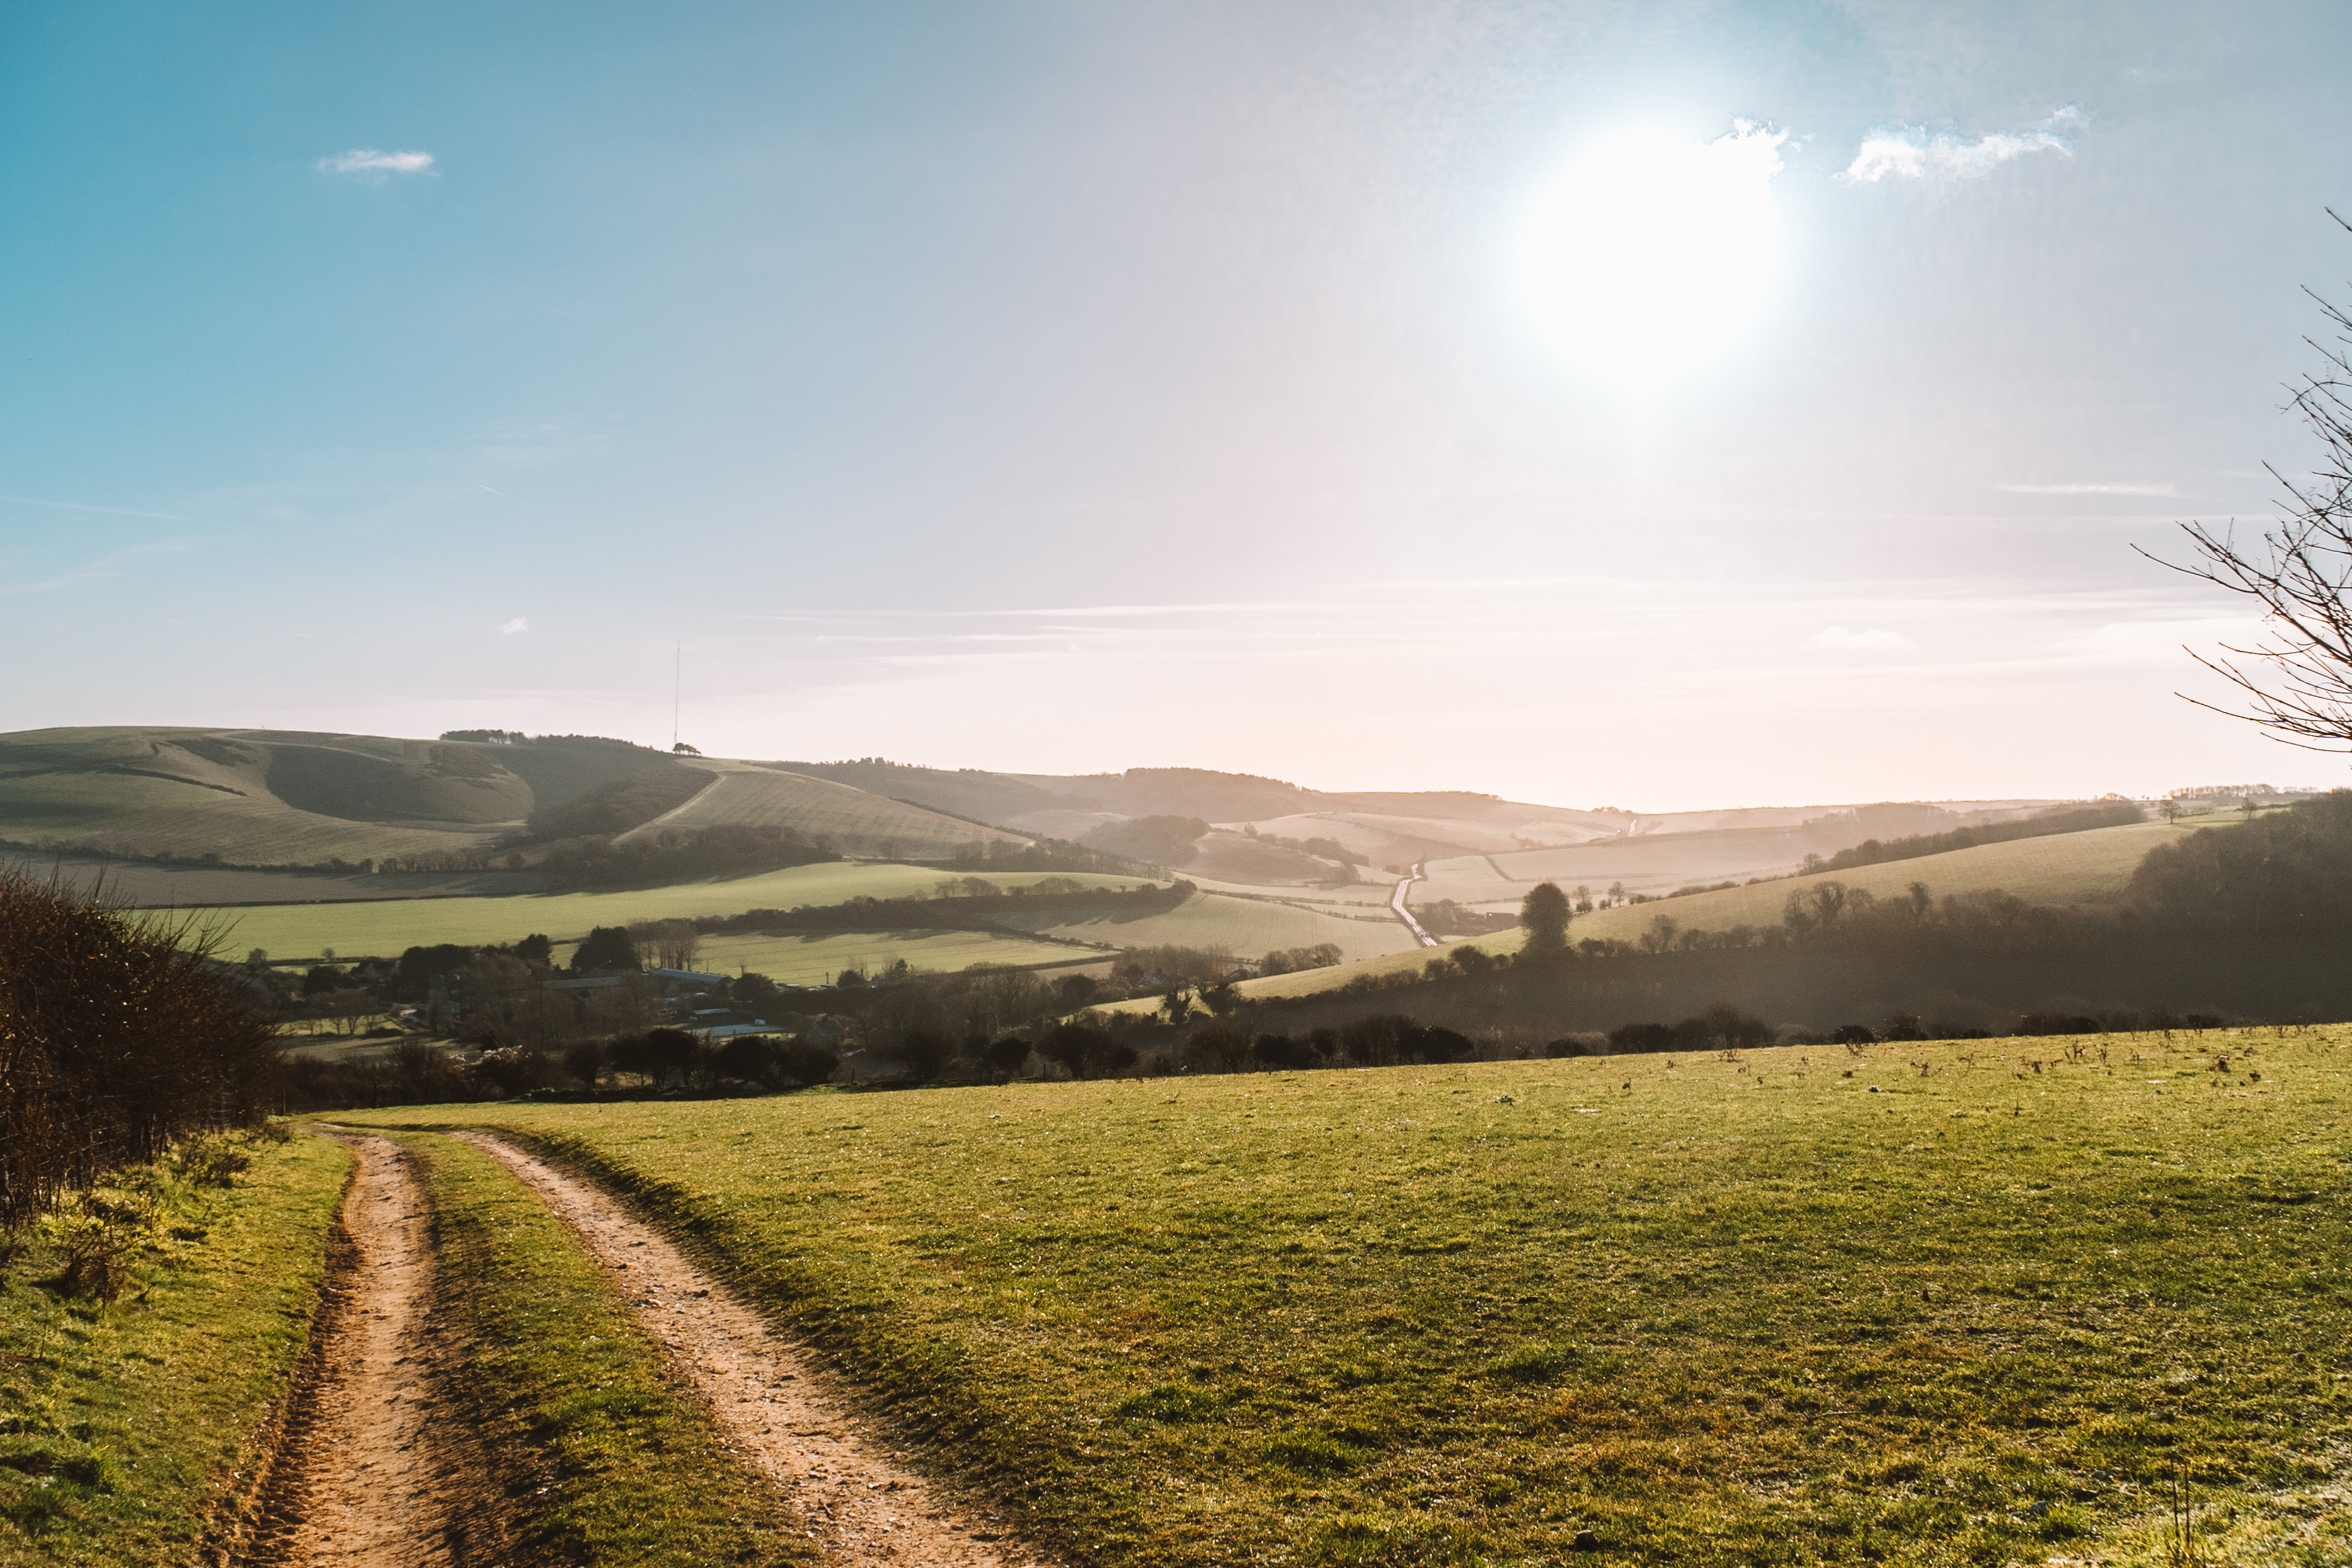 The sun shines over a countryside scene of rolling hills and fields on the Isle of Wight